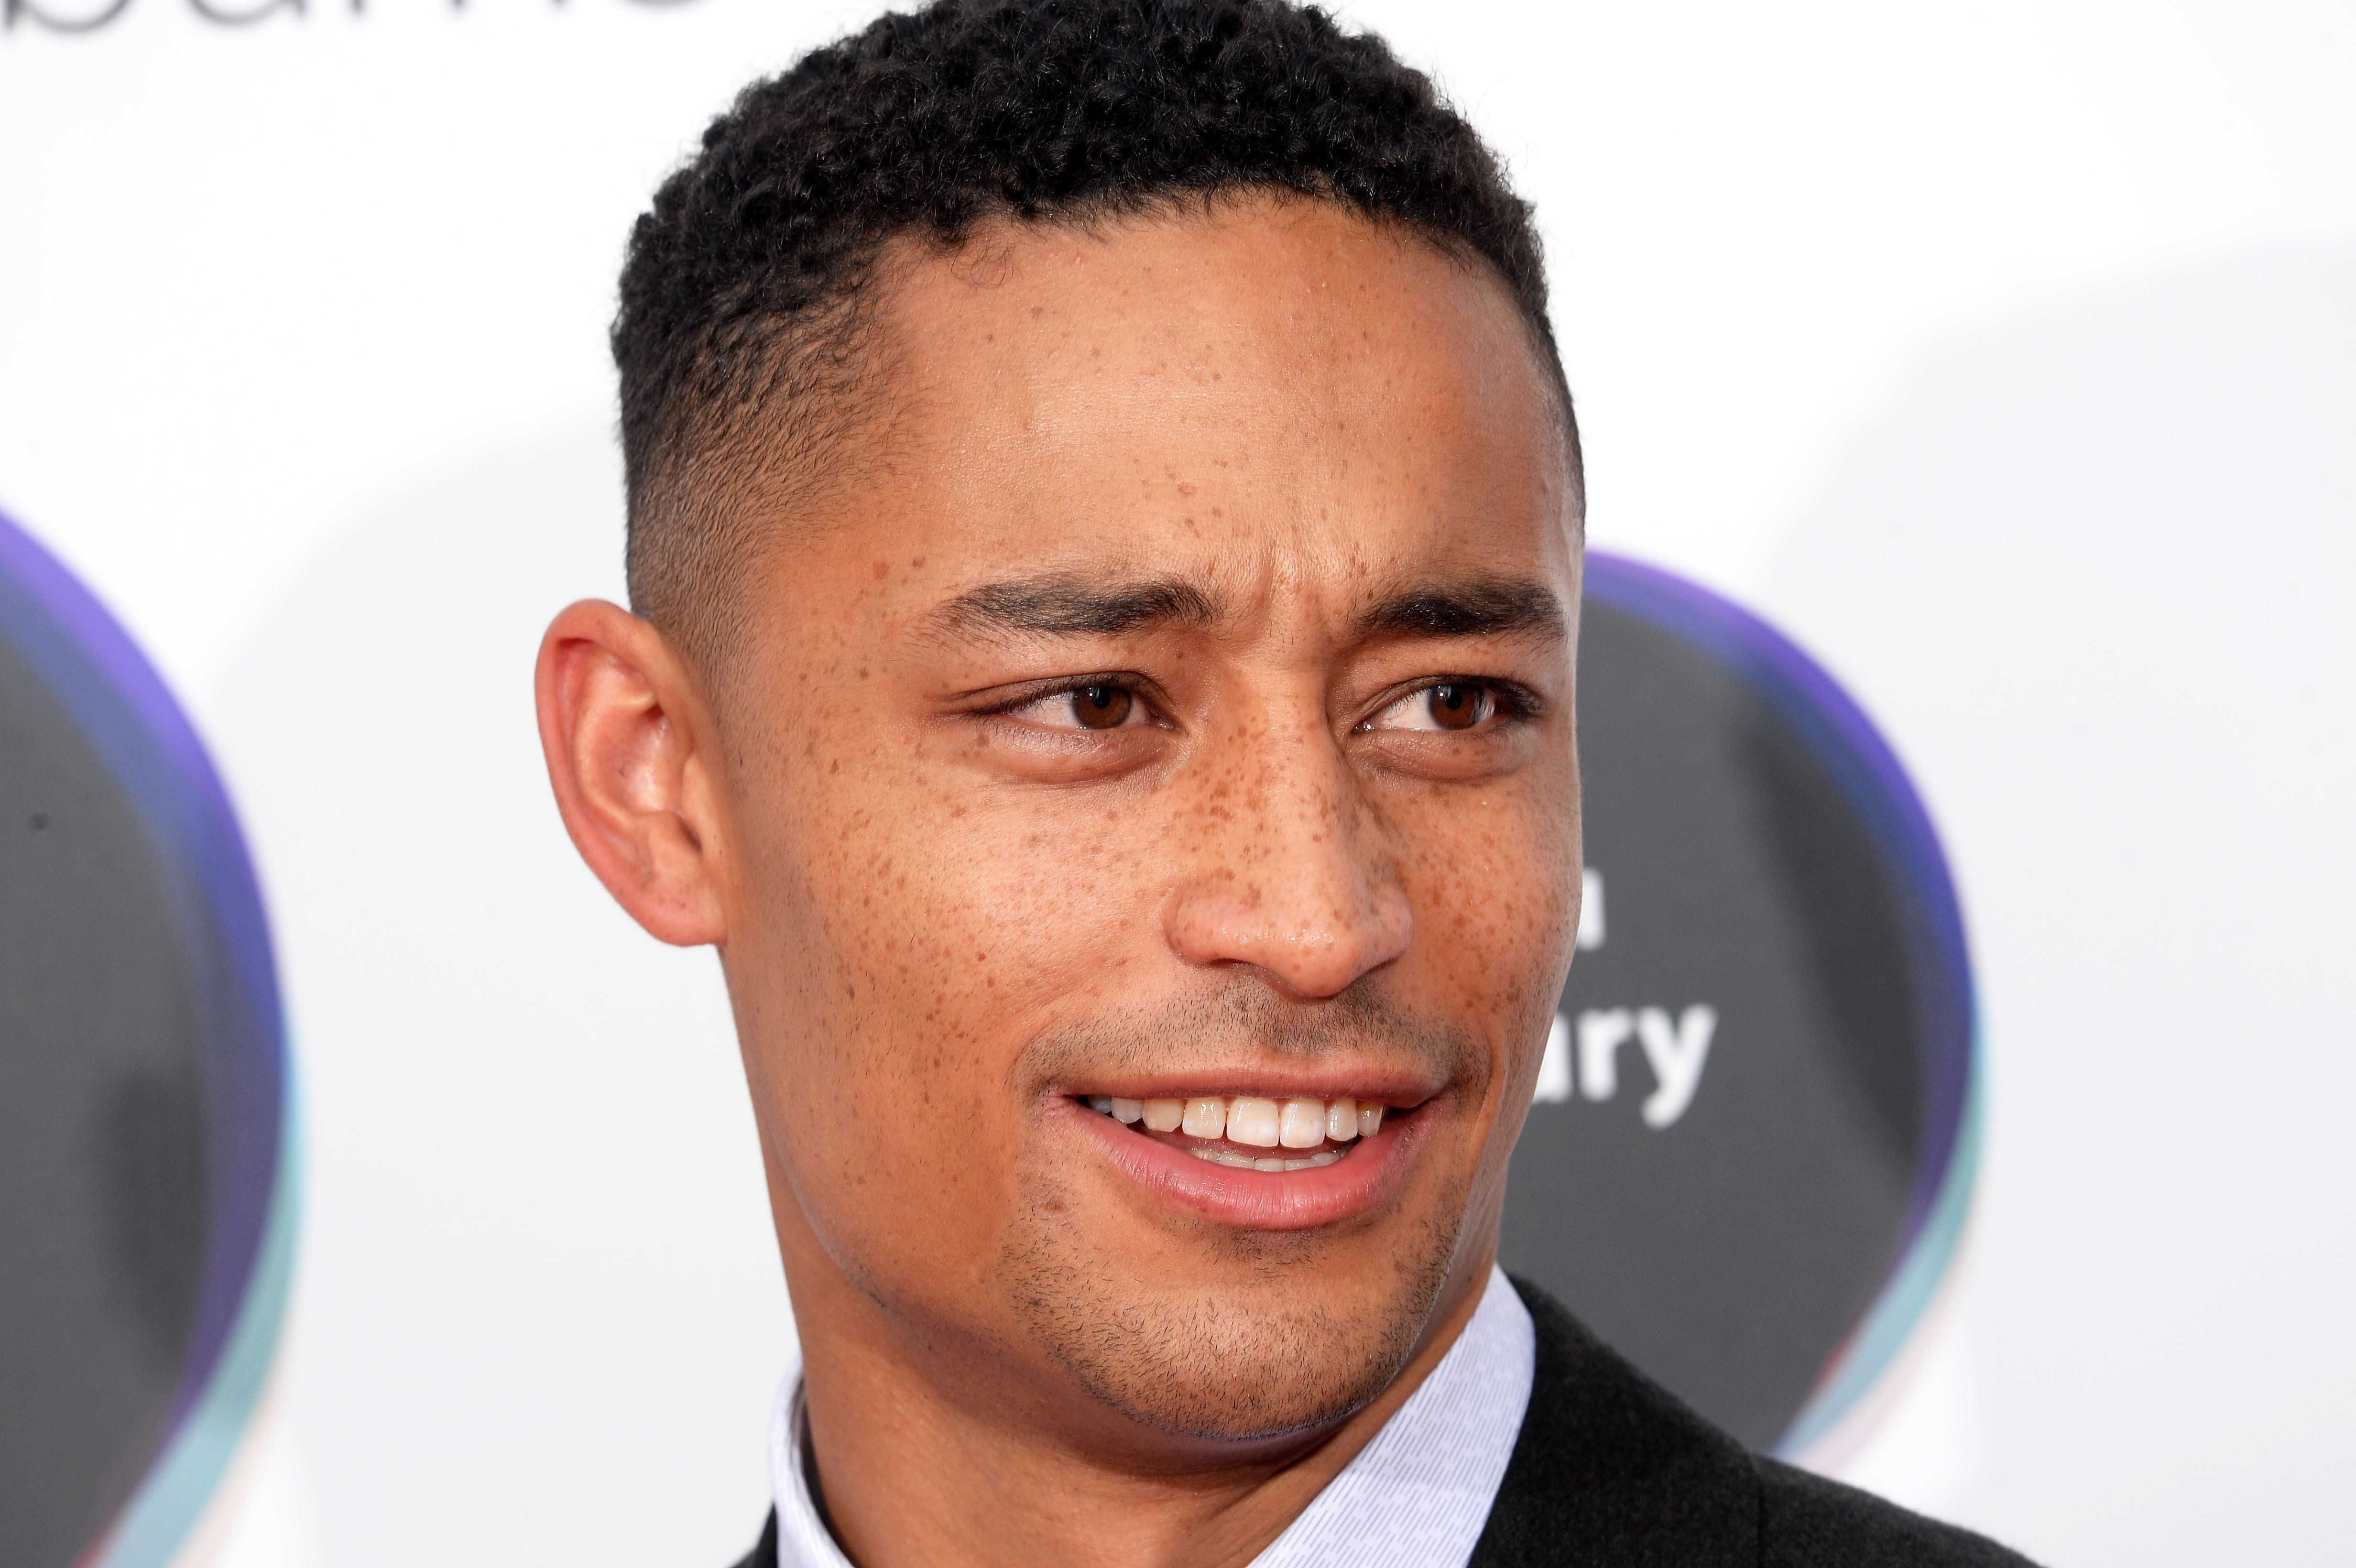 LONDON, ENGLAND - SEPTEMBER 14:  Loyle Carner arrives at the Hyundai Mercury Prize 2017 at Eventim Apollo on September 14, 2017 in London, England.  (Photo by Dave J Hogan/Dave J Hogan/Getty Images)